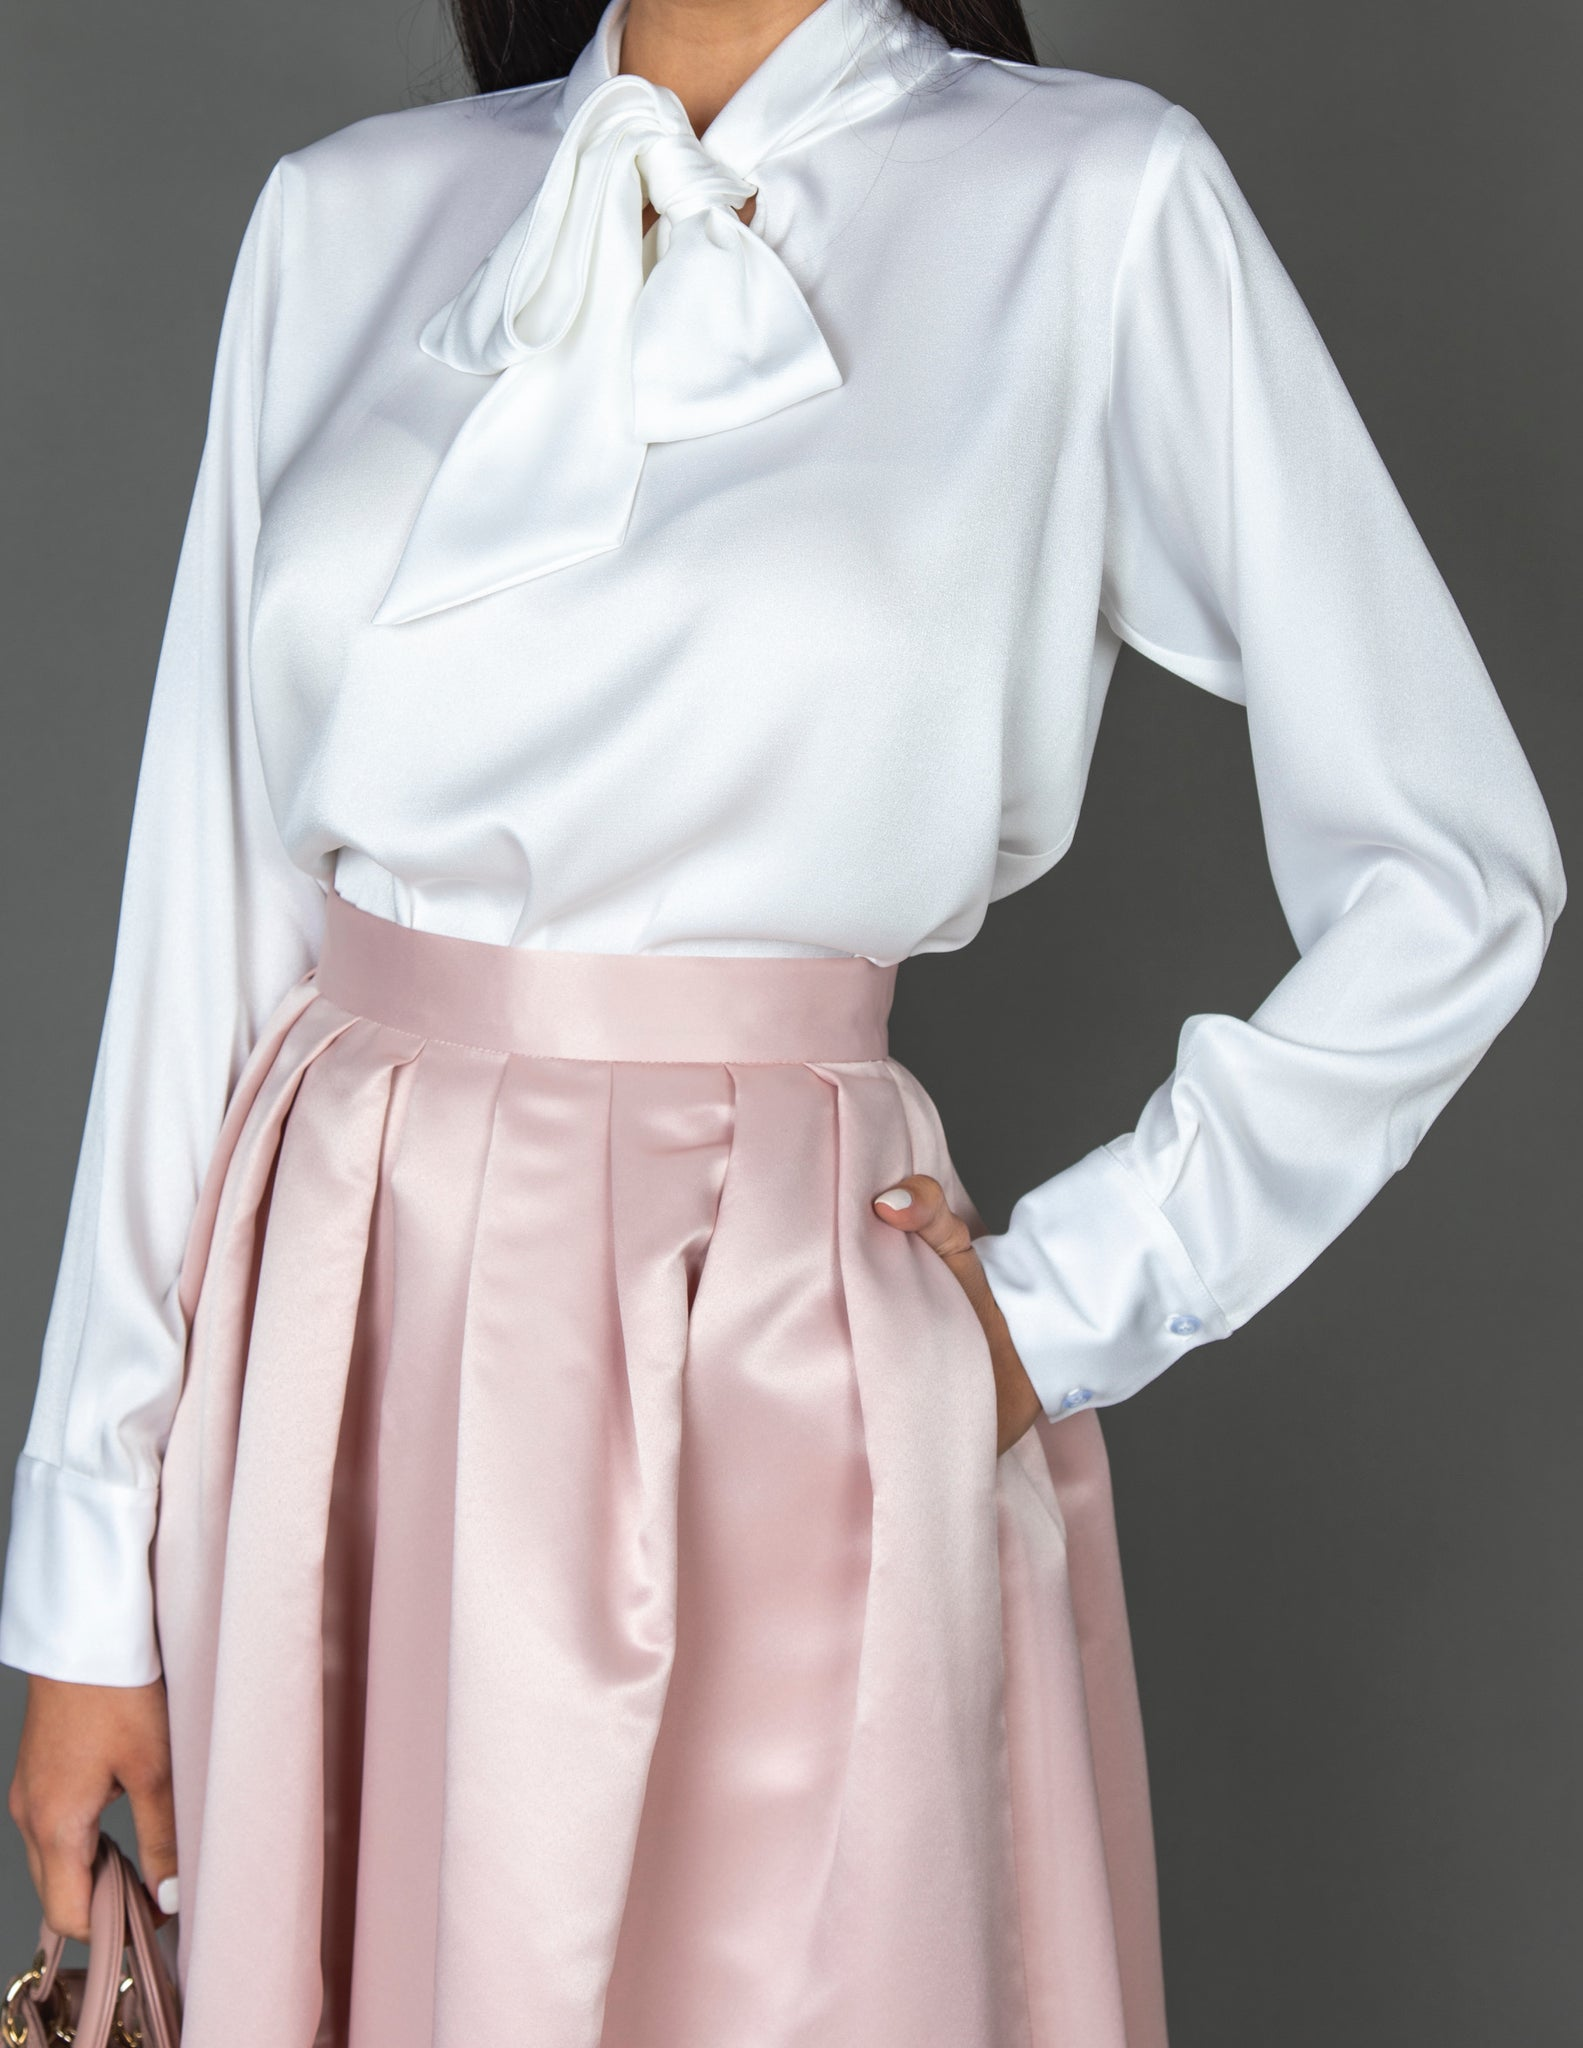 SS20 TAFFETA BALL GOWN SKIRT & MATT SATIN BLOUSE